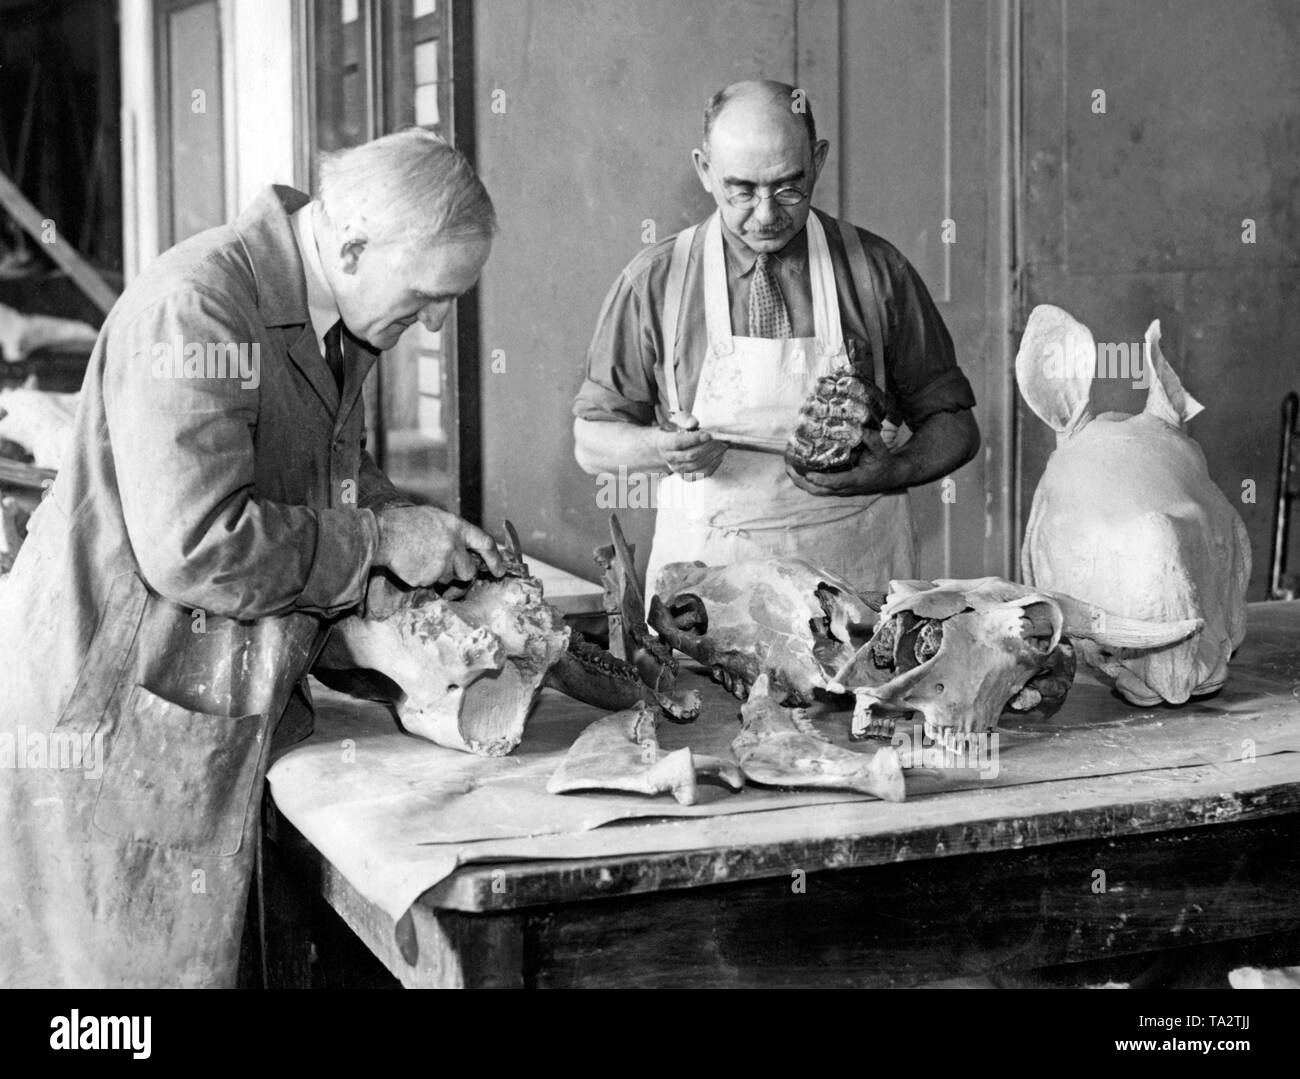 Paleontologists Otto Falkenbarh (left) and George Olson work on fossilized dinosaur bones in the American Museum of Natural History. - Stock Image